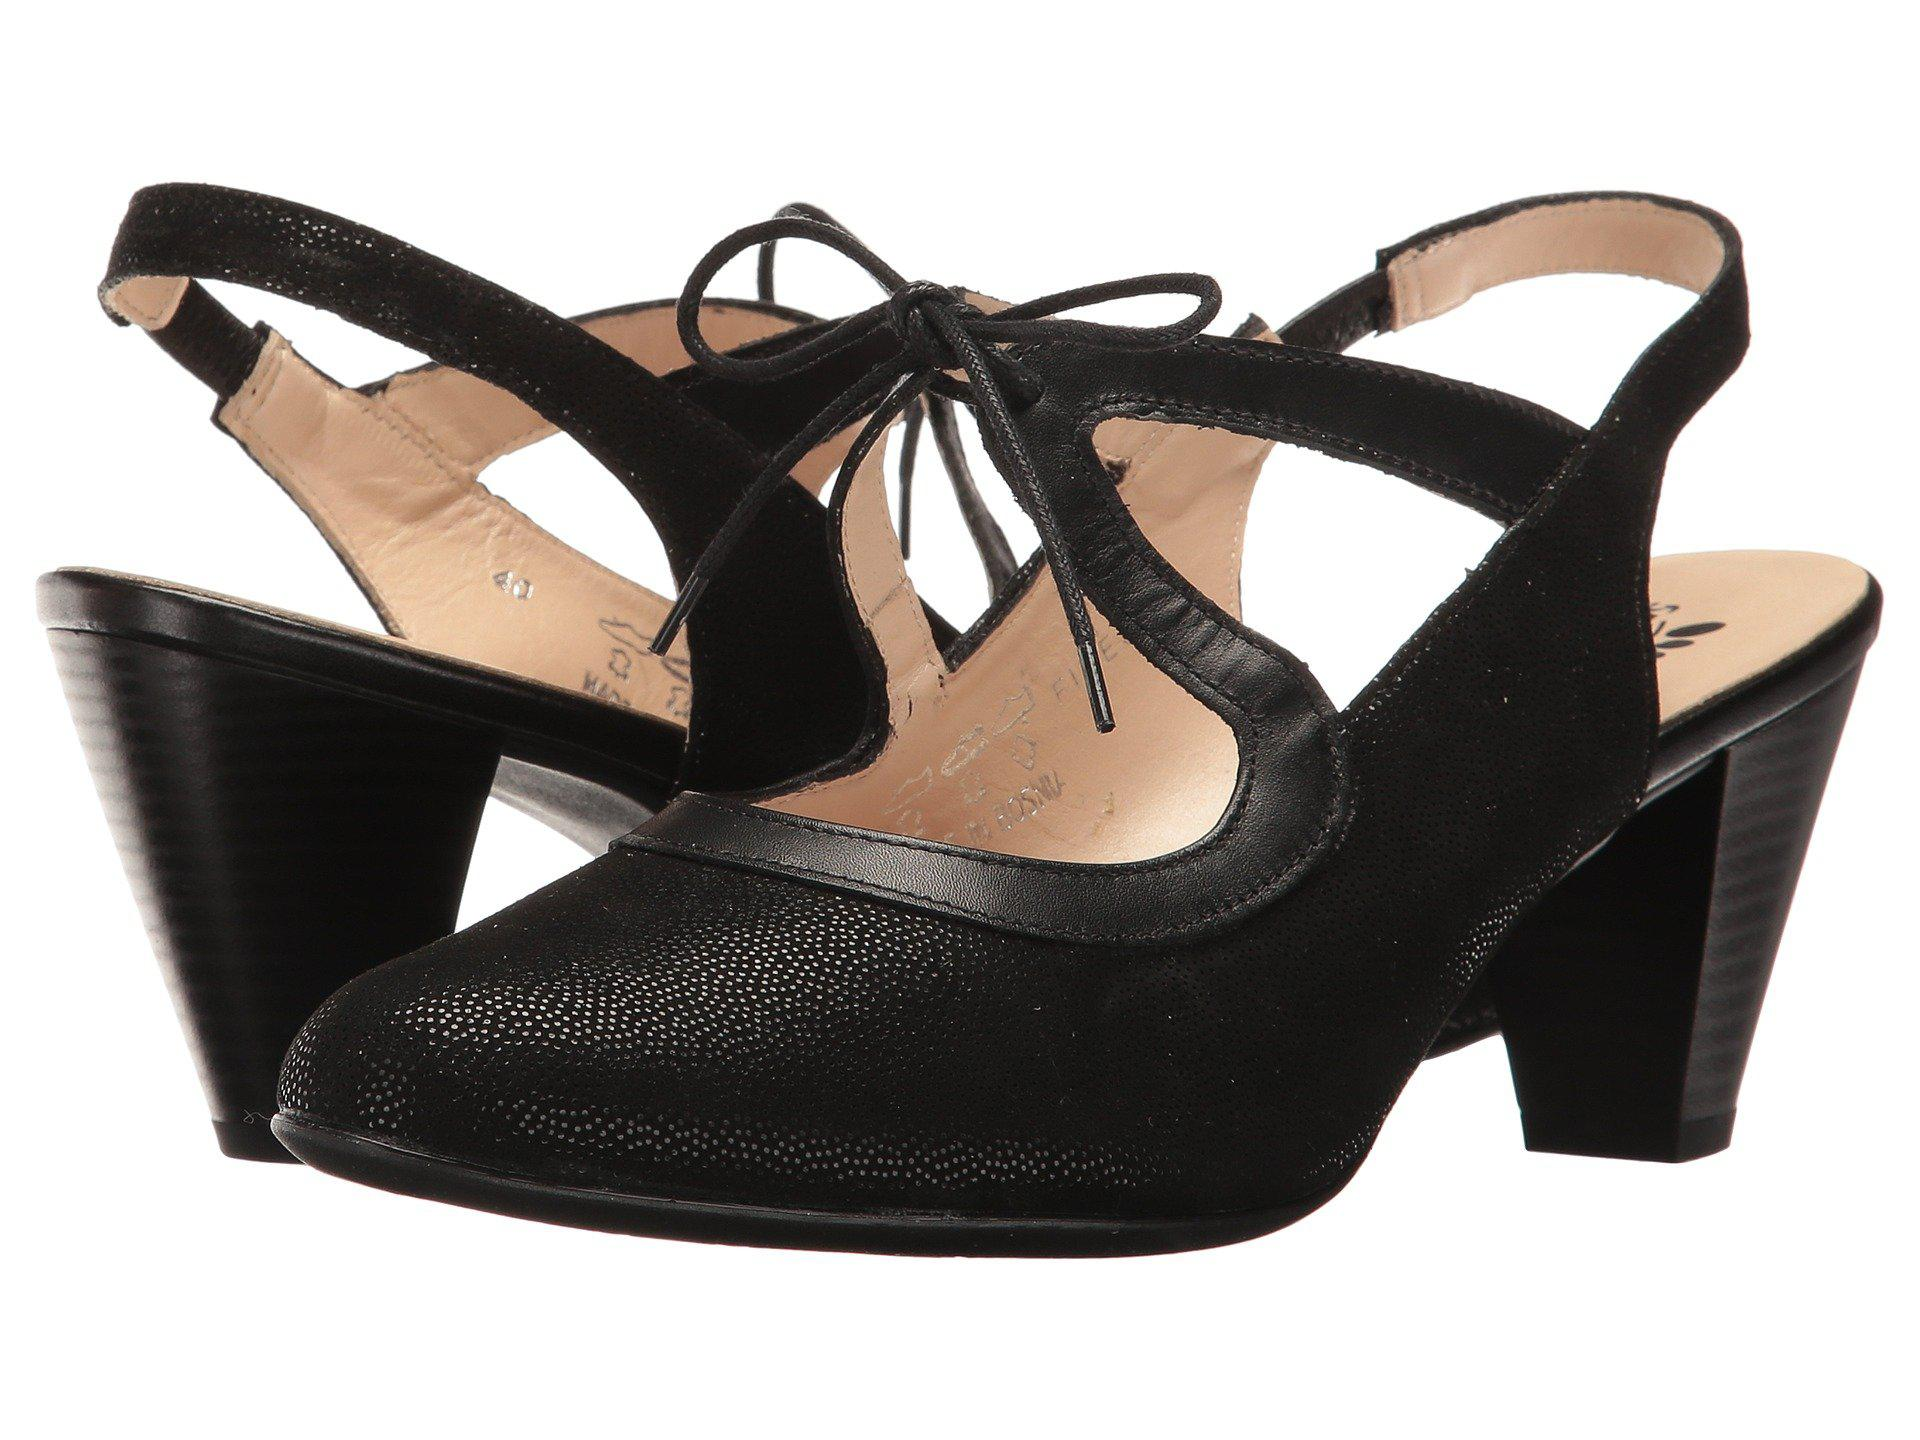 Spring Step Finesse Lace Up Slingback (Women's) wifN8w